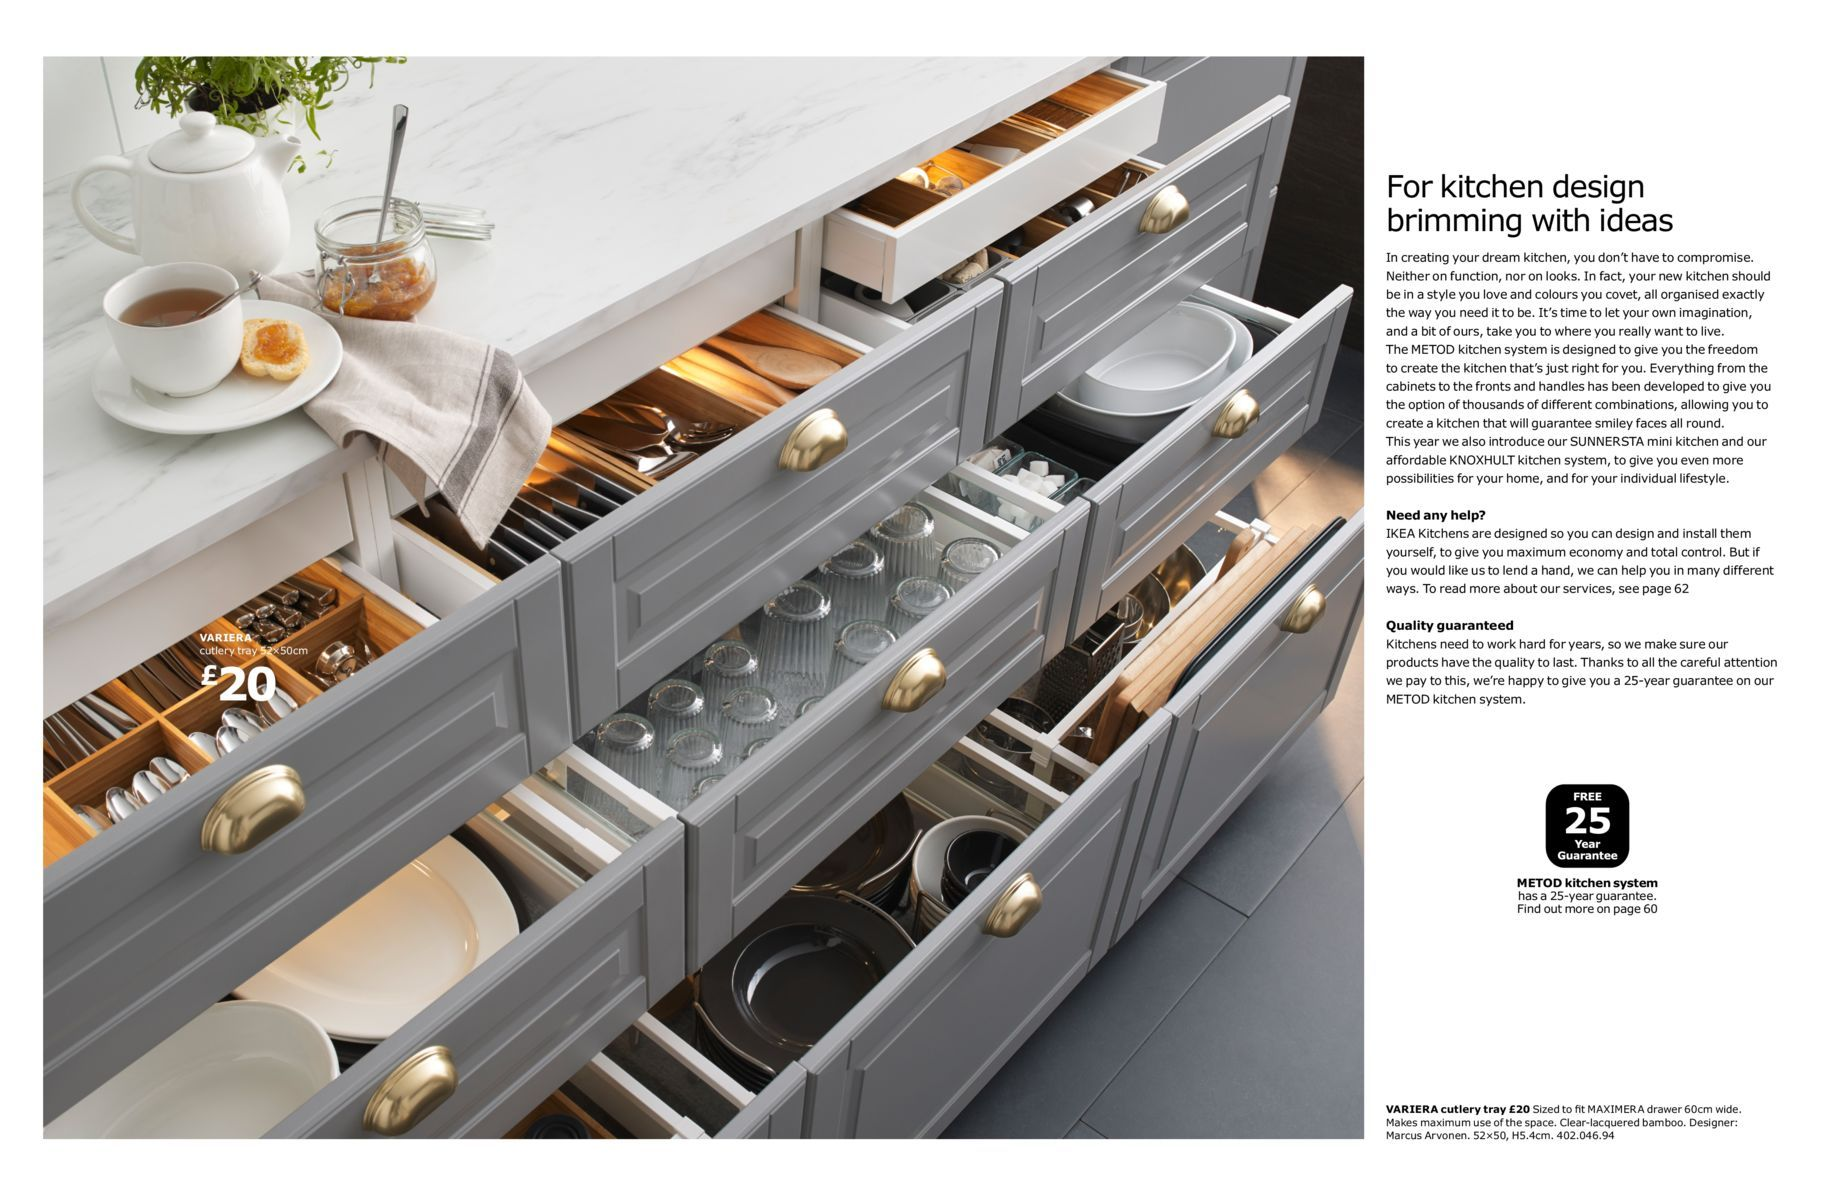 Ikea Kitchen Brochure 2017, EKBACKEN White Marble Laminate